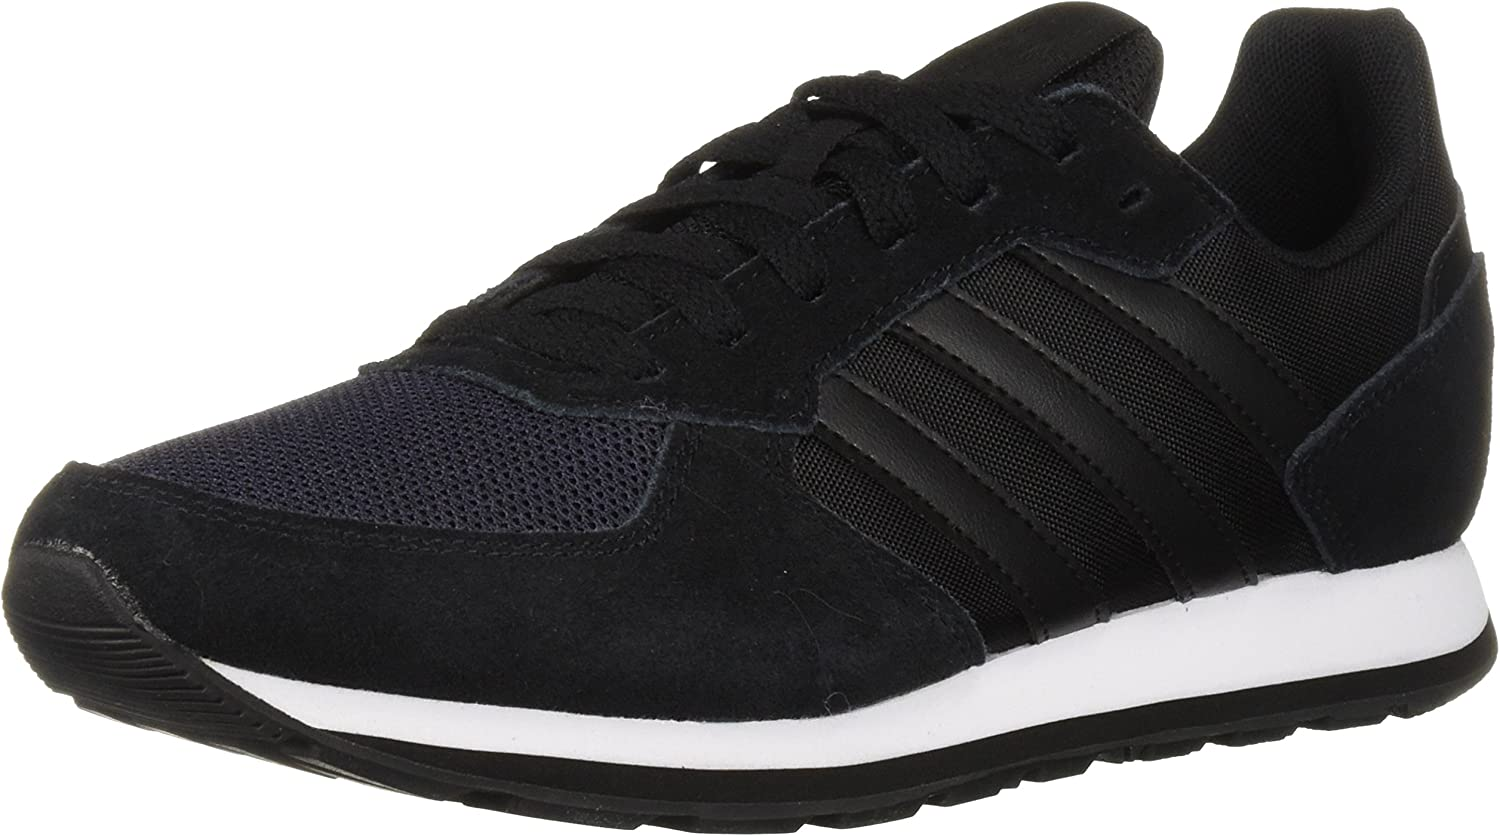 Adidas Womens 8k Running shoes